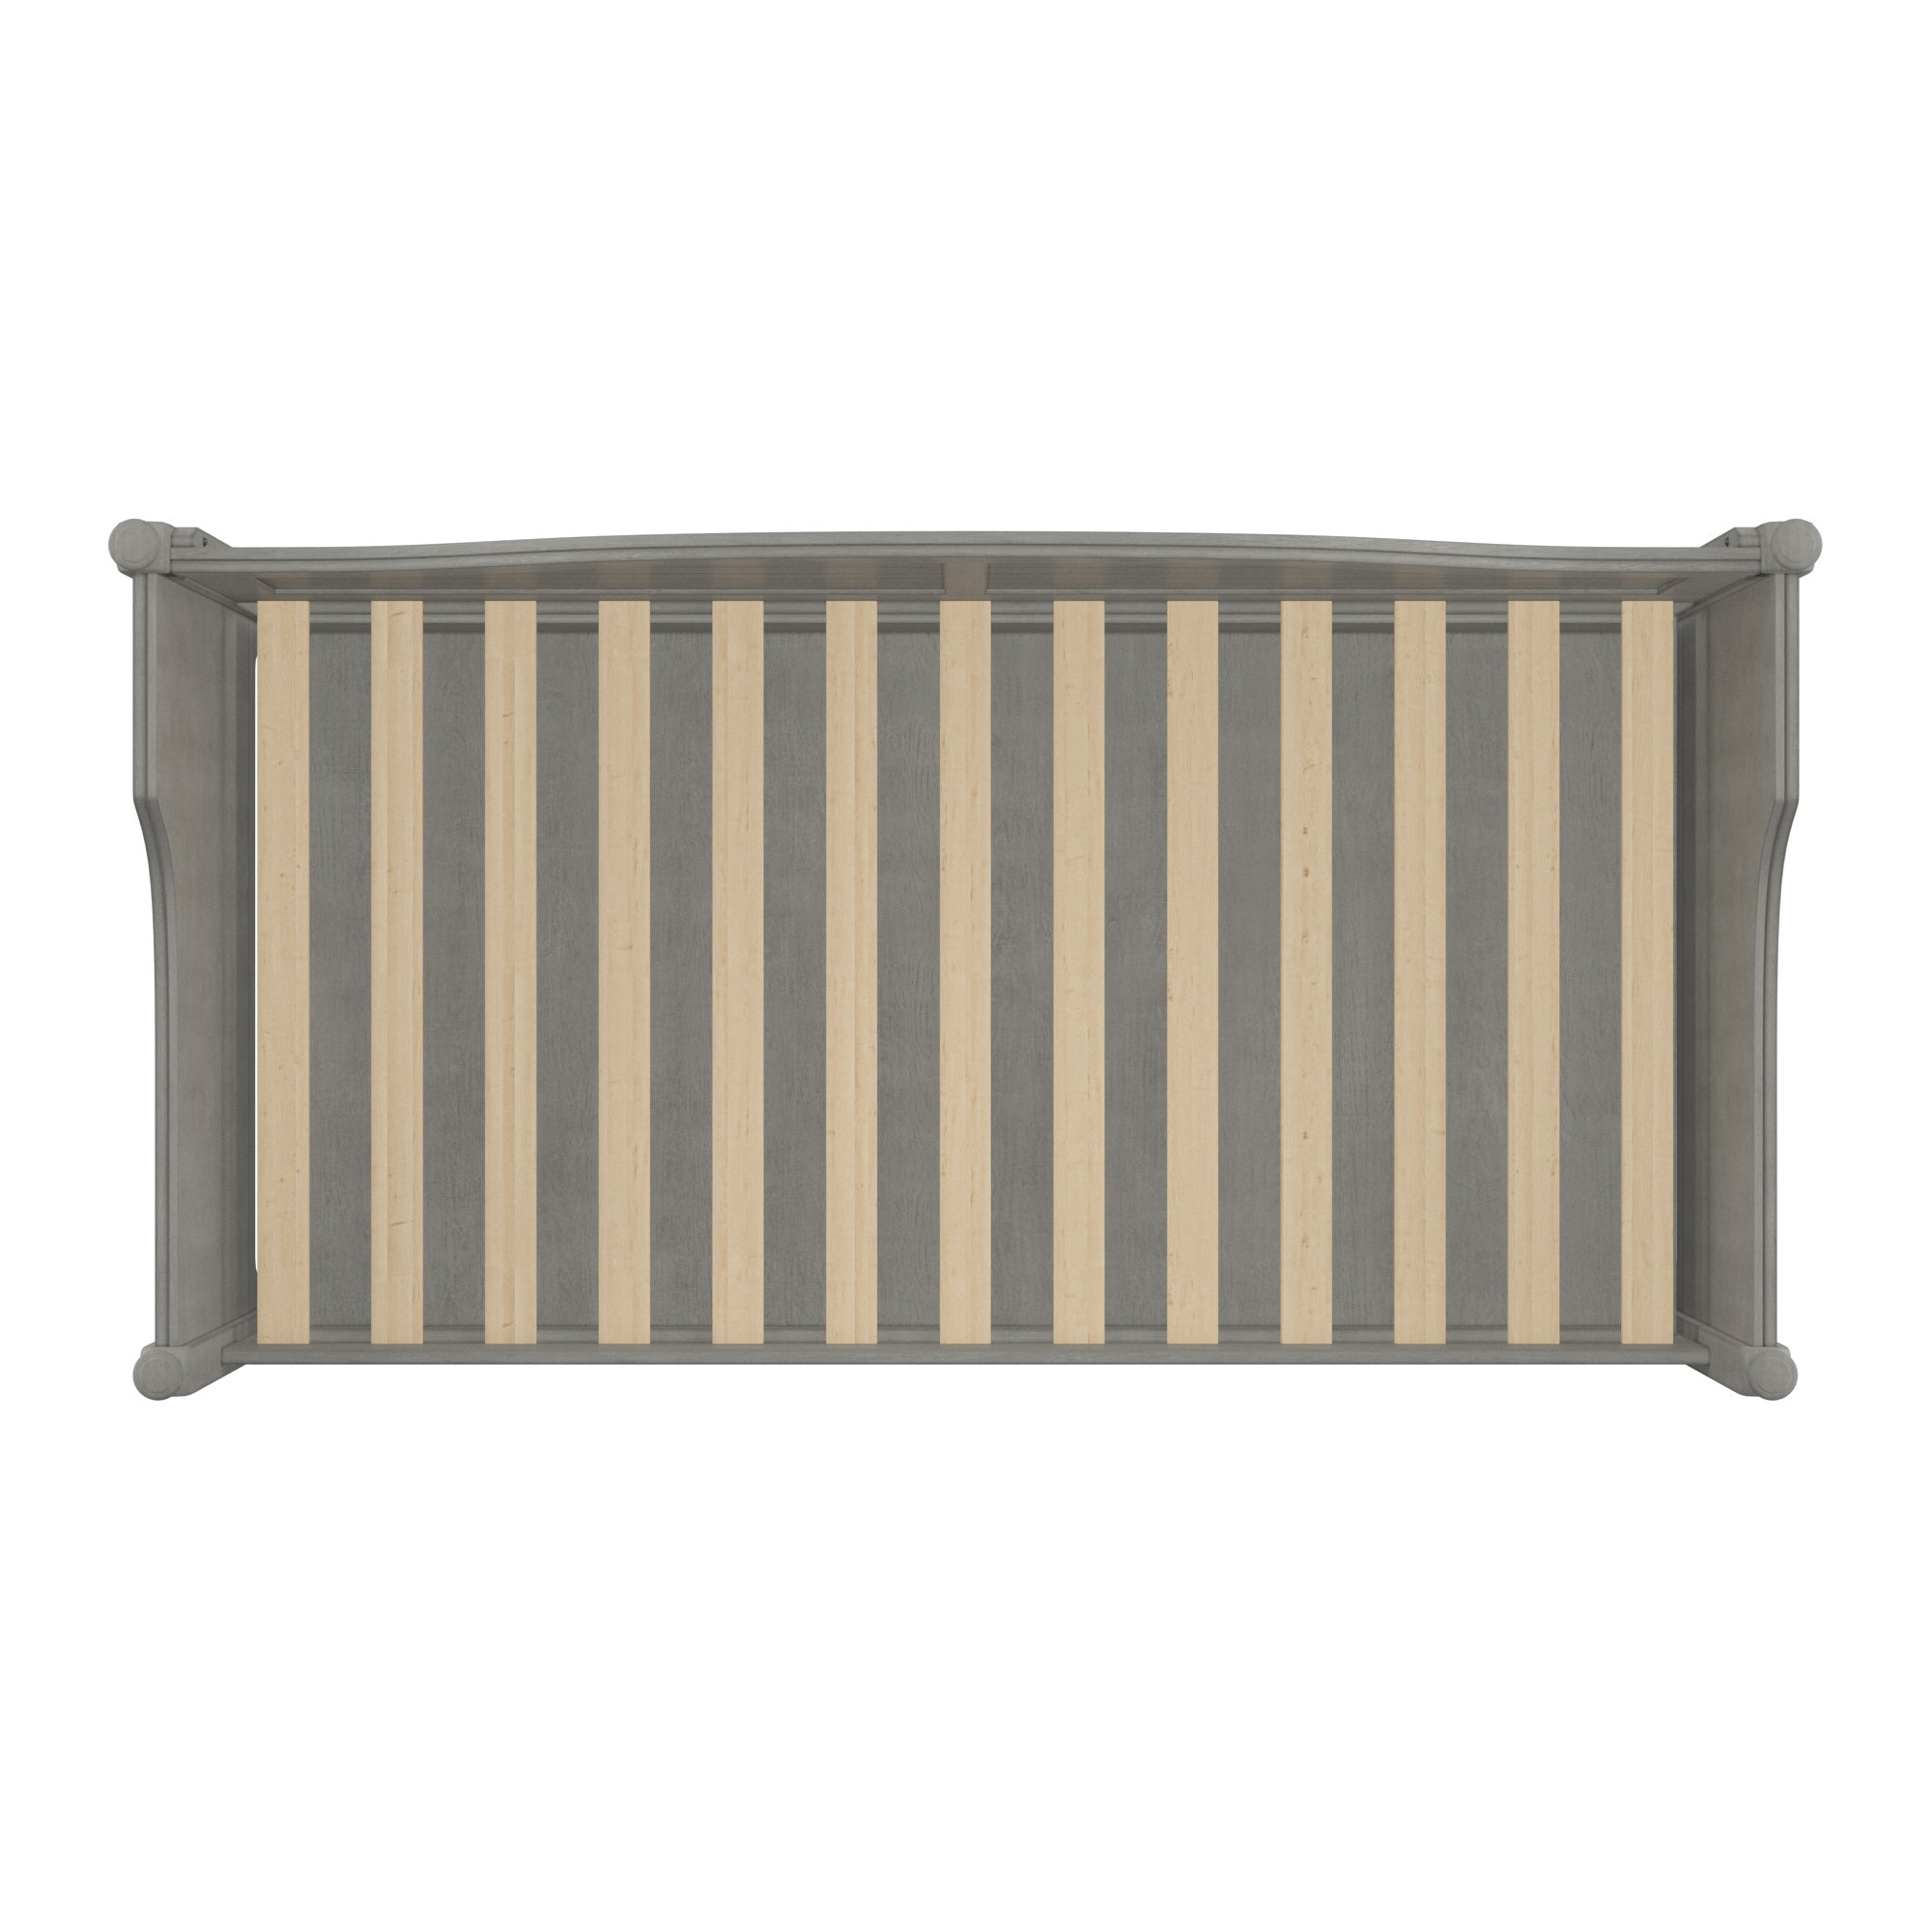 Traditional Paneled Wood Daybed - Antique Grey, No Trundle